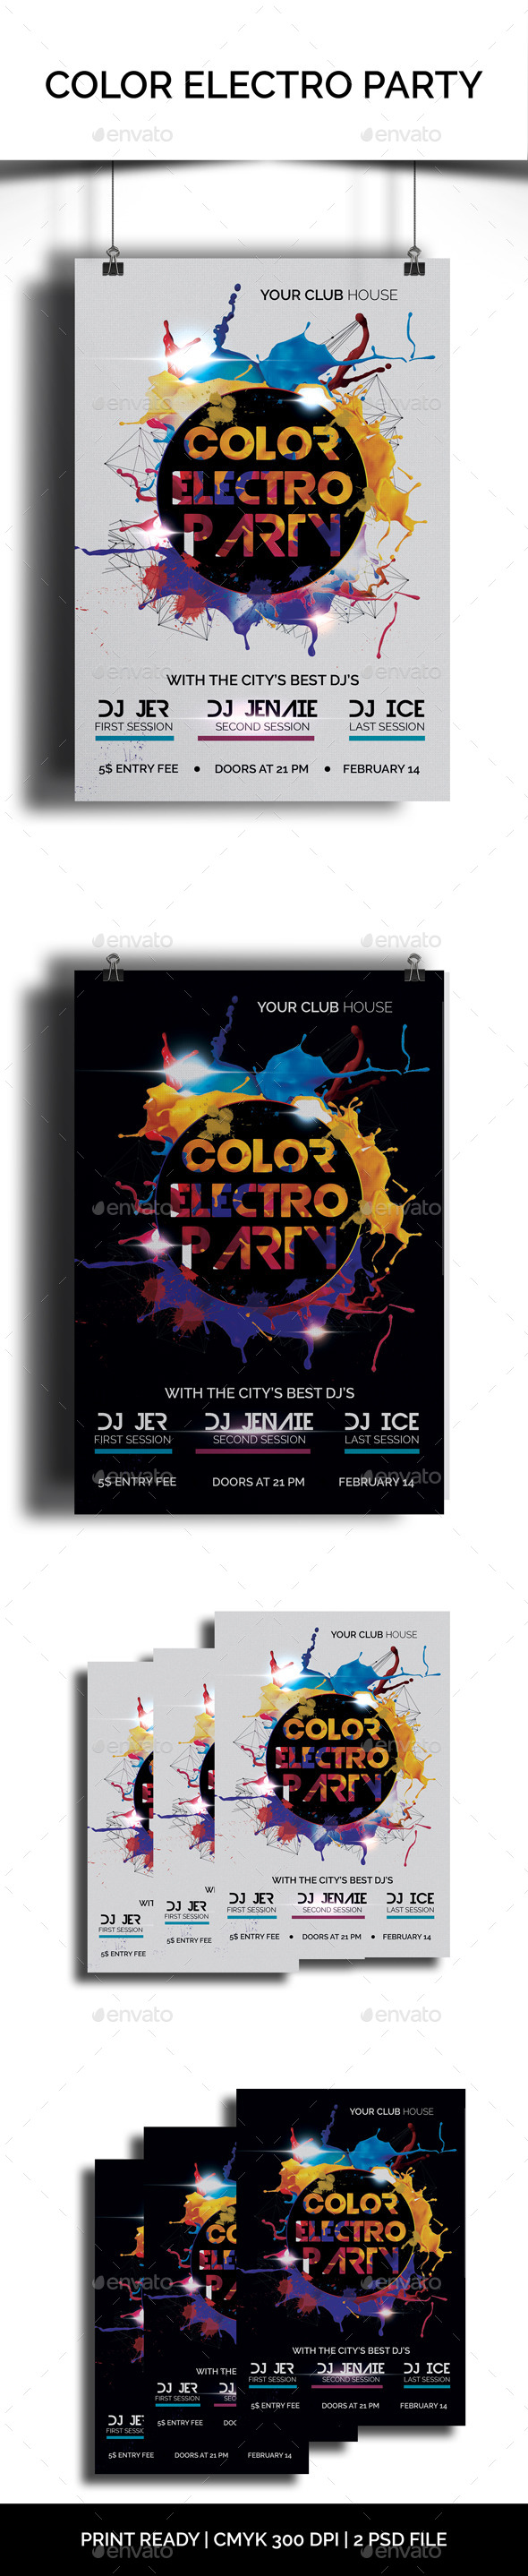 GraphicRiver Color Electro Party 10338140